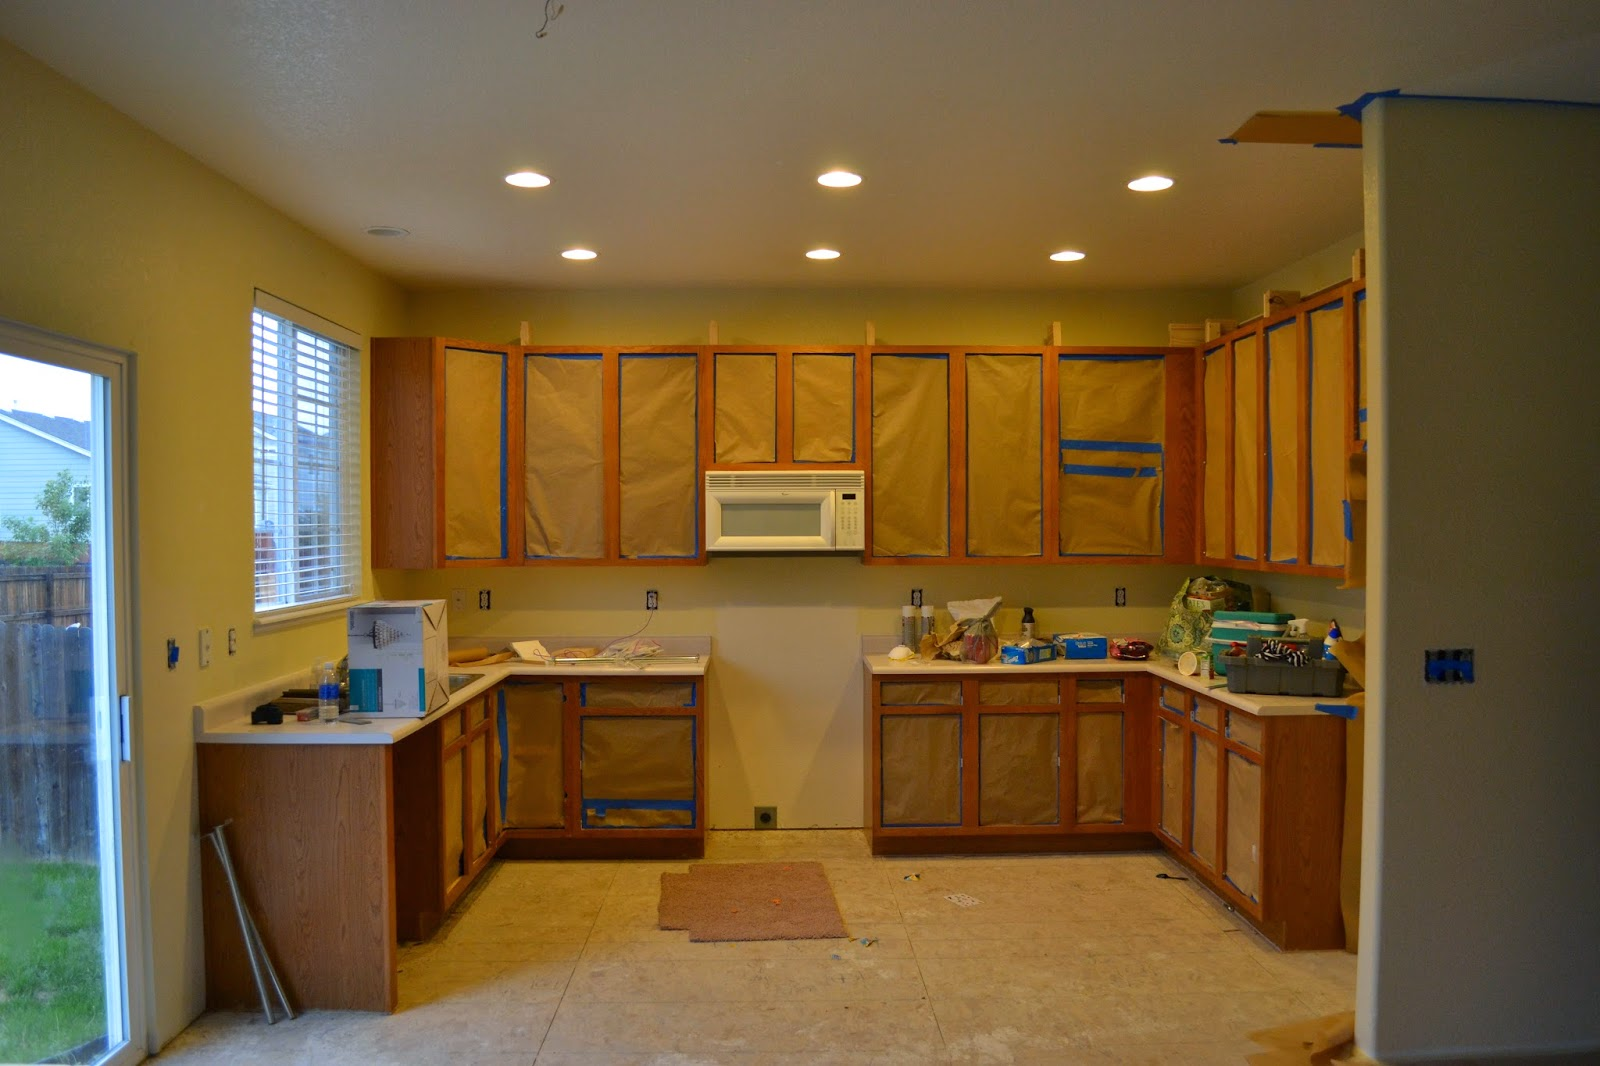 How To Paint Kitchen Cabinets Without Streaks Diy Kitchen Makeover My719moms